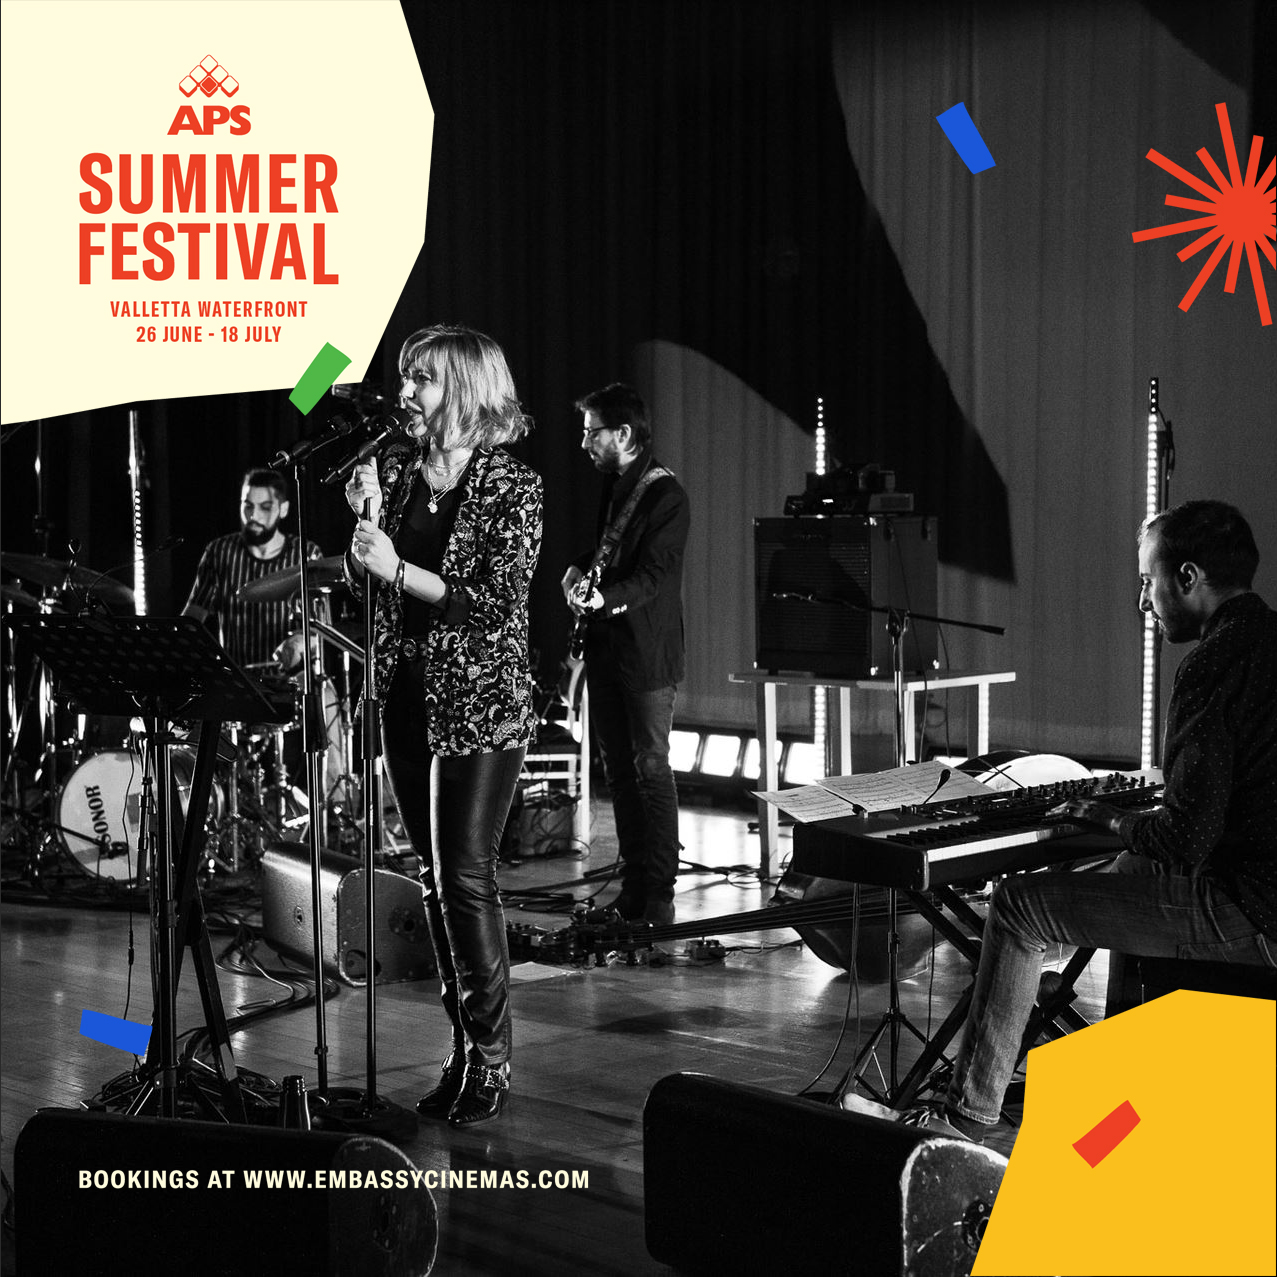 Il-Hoss tal-Ghabex APS Summer Festival flyer